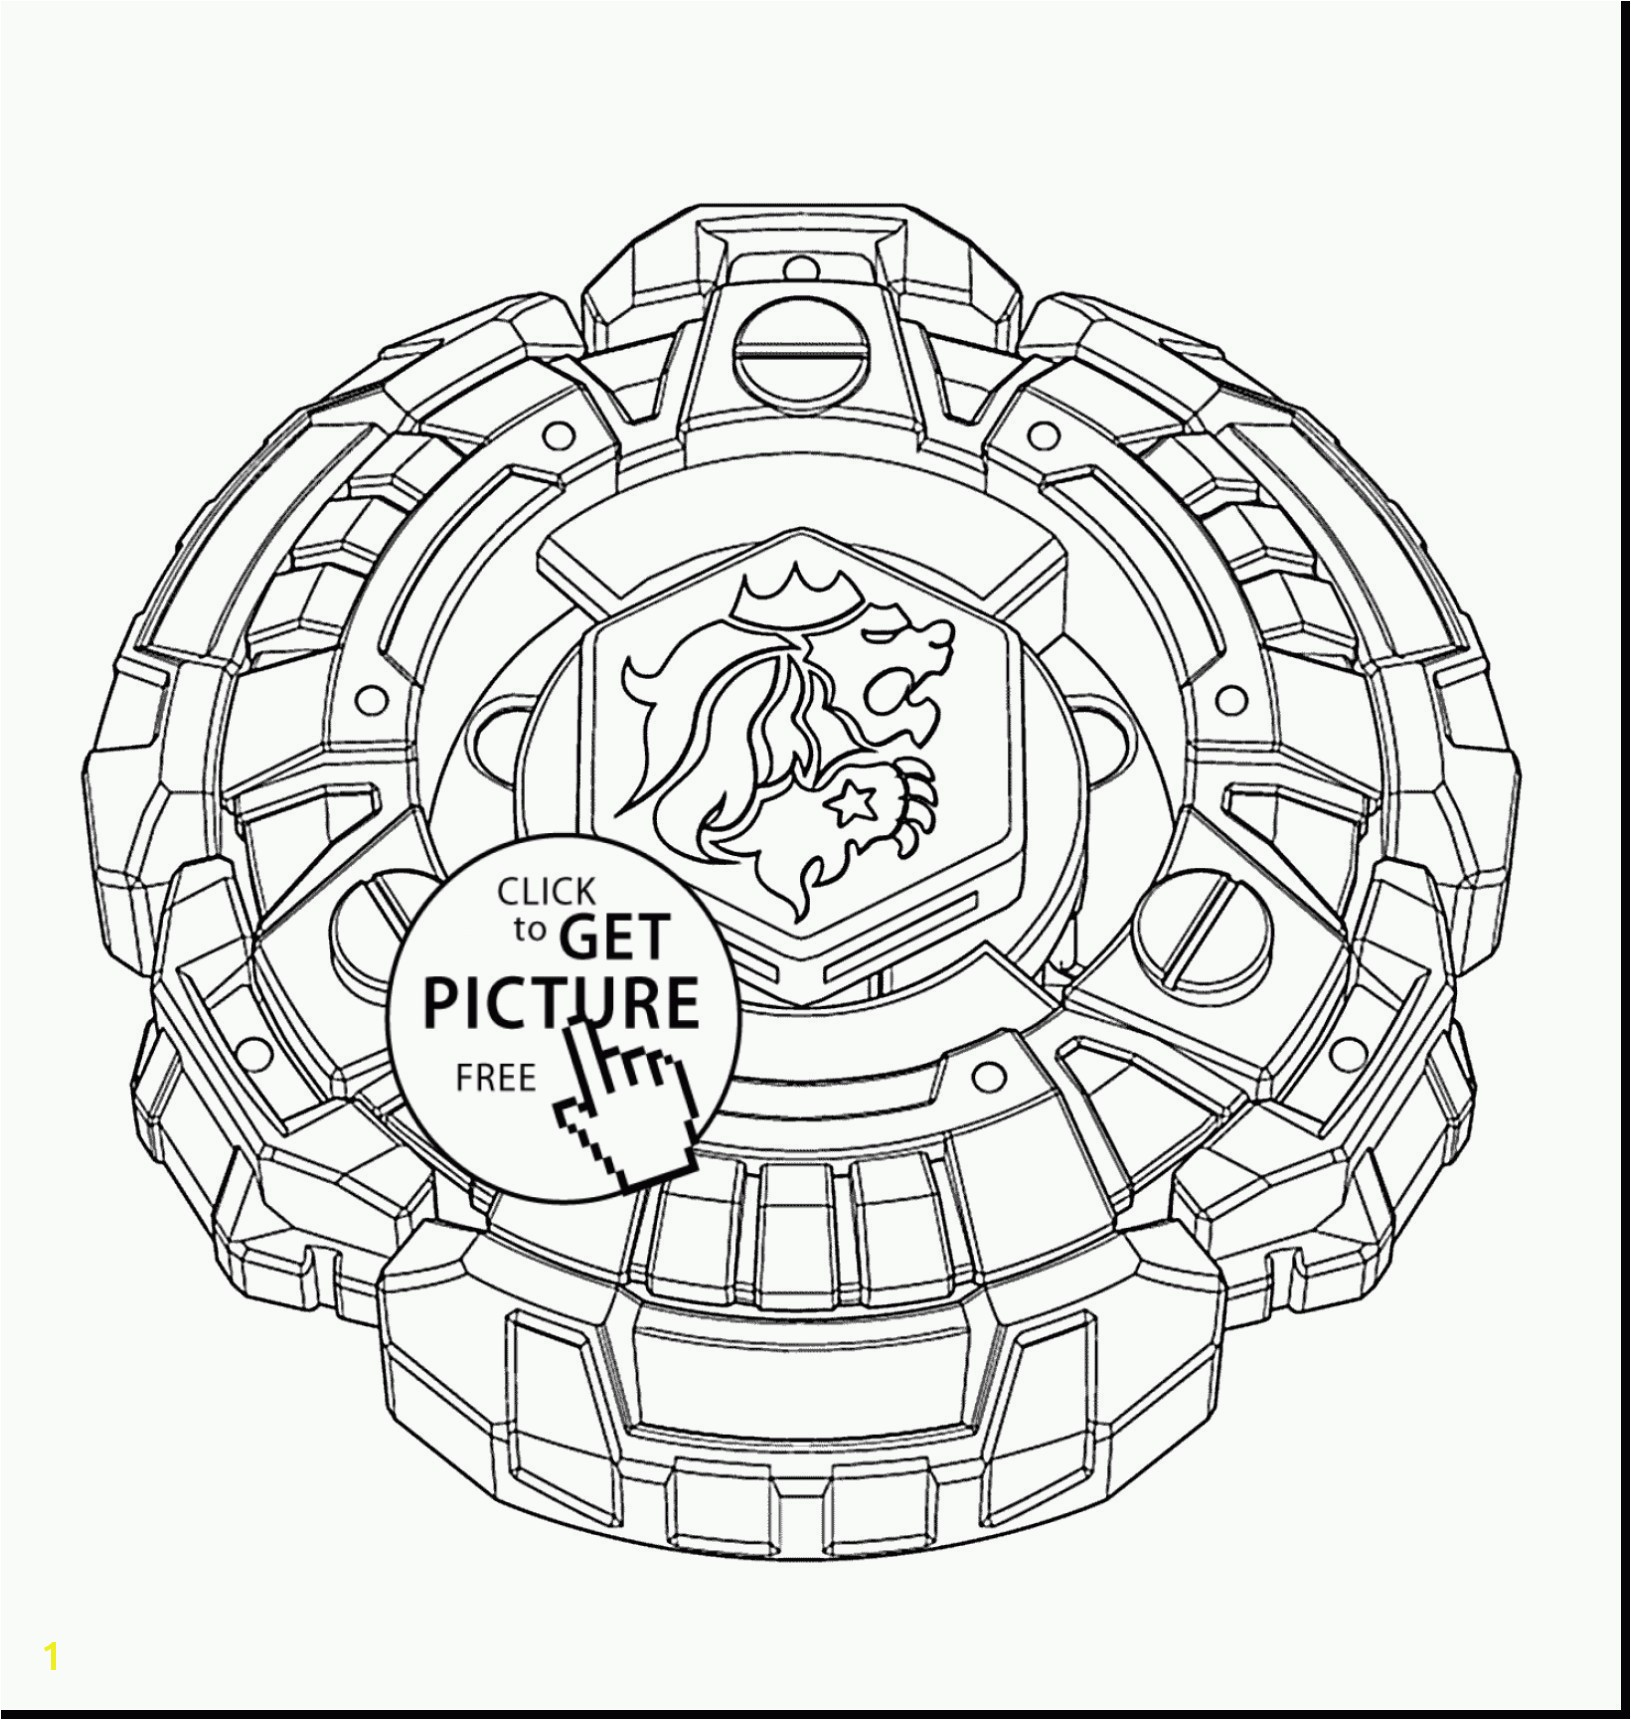 Beyblade Ginga Coloring Pages Fresh Awesome Beyblade Coloring Pages Embellishment Printable Coloring 18 Fresh Beyblade